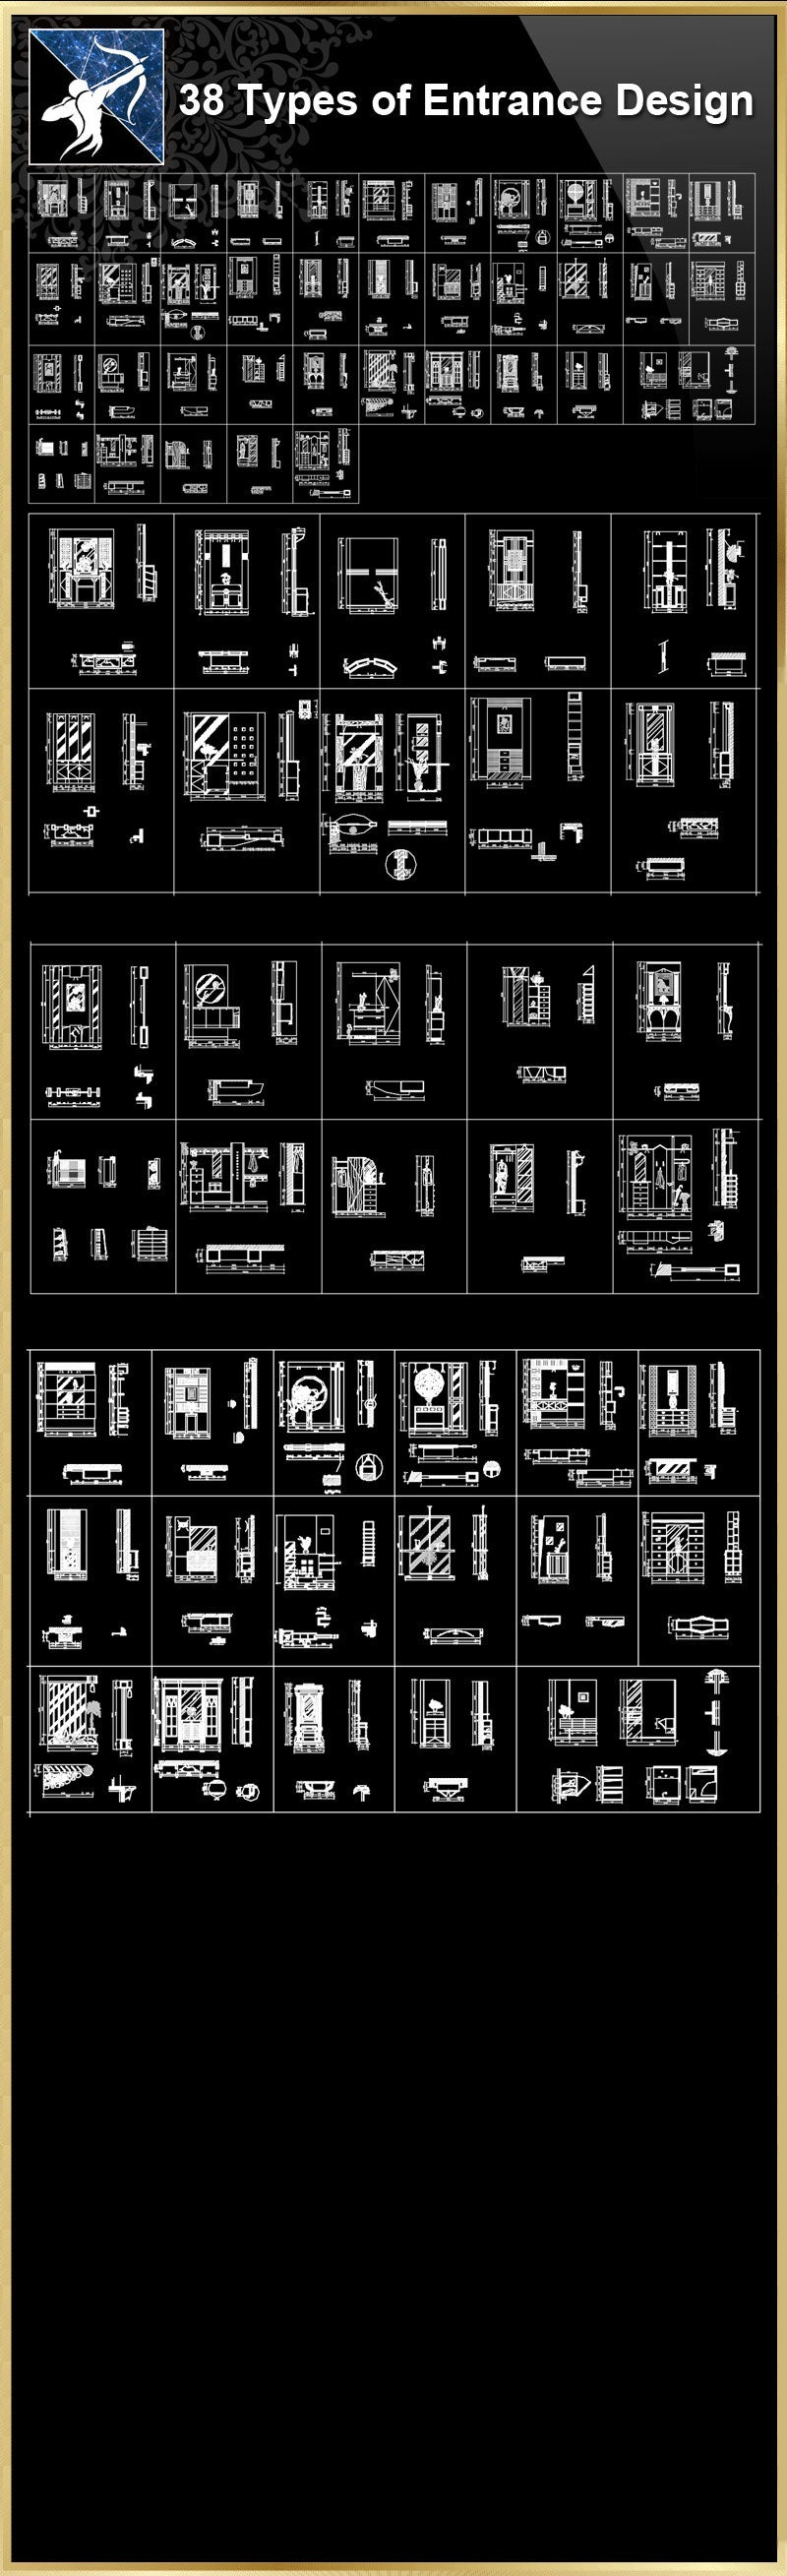 ★【38 Types of Entrance Design CAD Drawings】